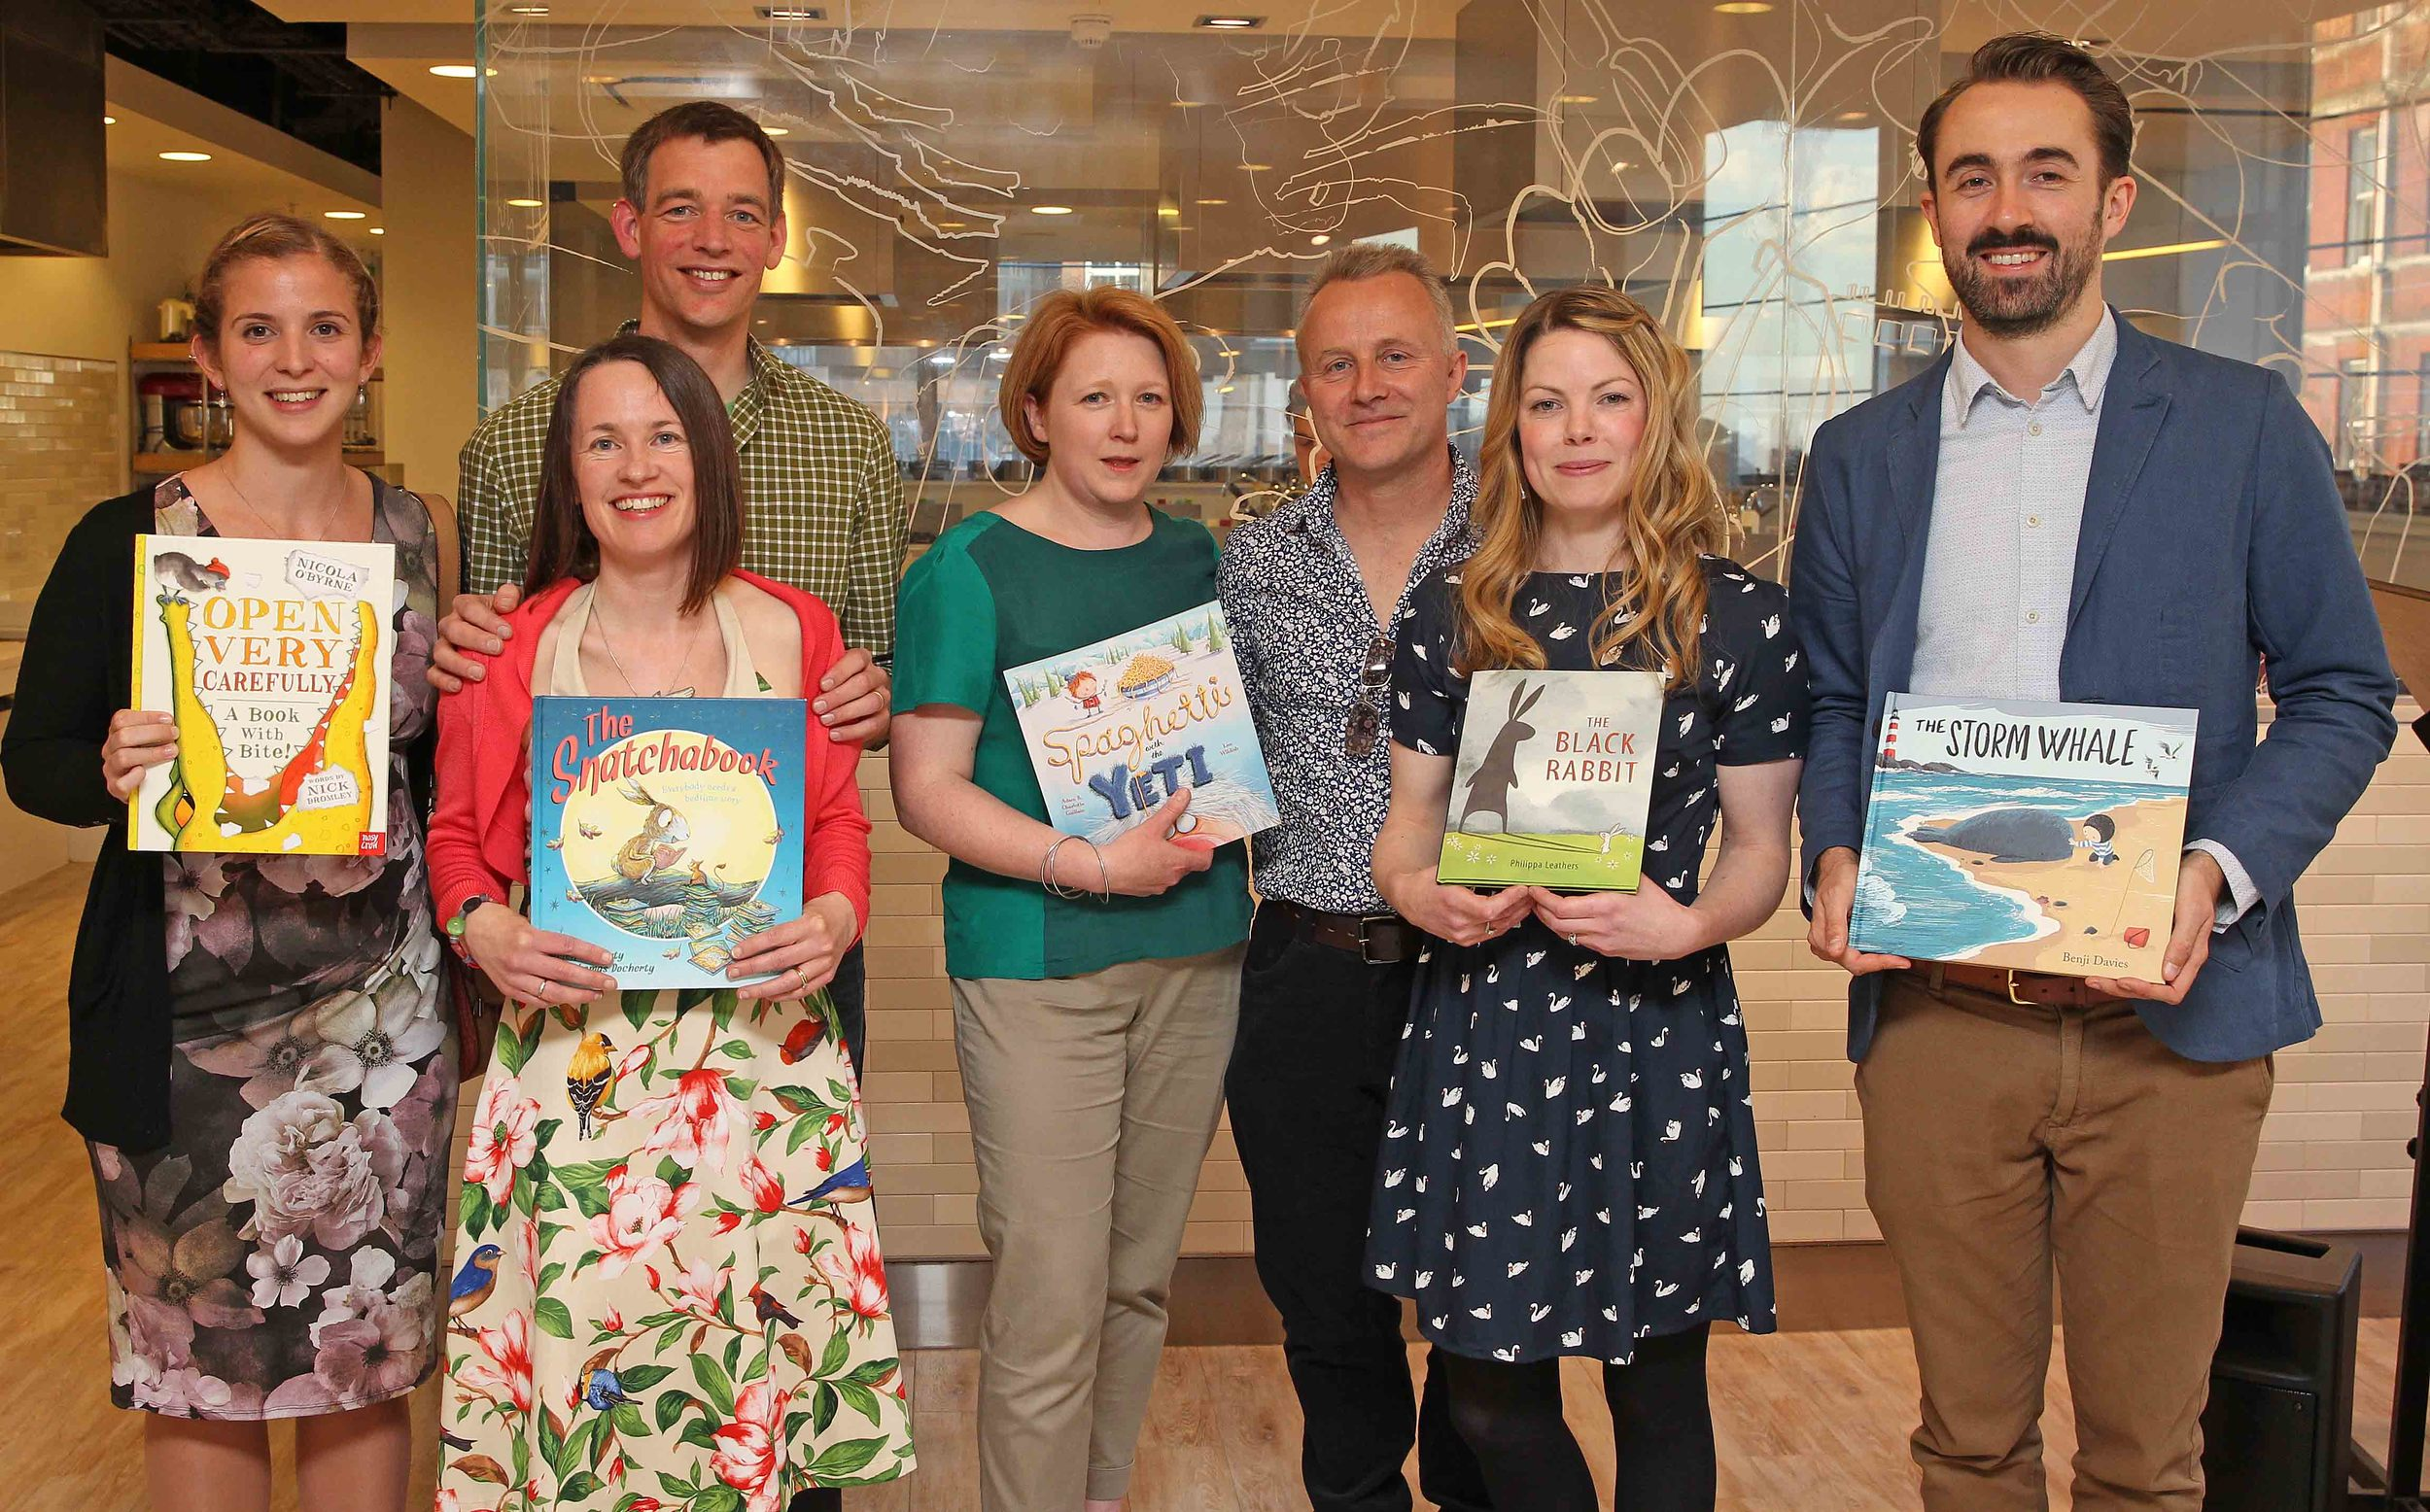 Oscar's Book Prize 2014 shortlist, from left: Nicola O'Byrne, Helen and Thomas Docherty, Charlotte and Adam Guillain, Philippa Leathers and Benji Davies